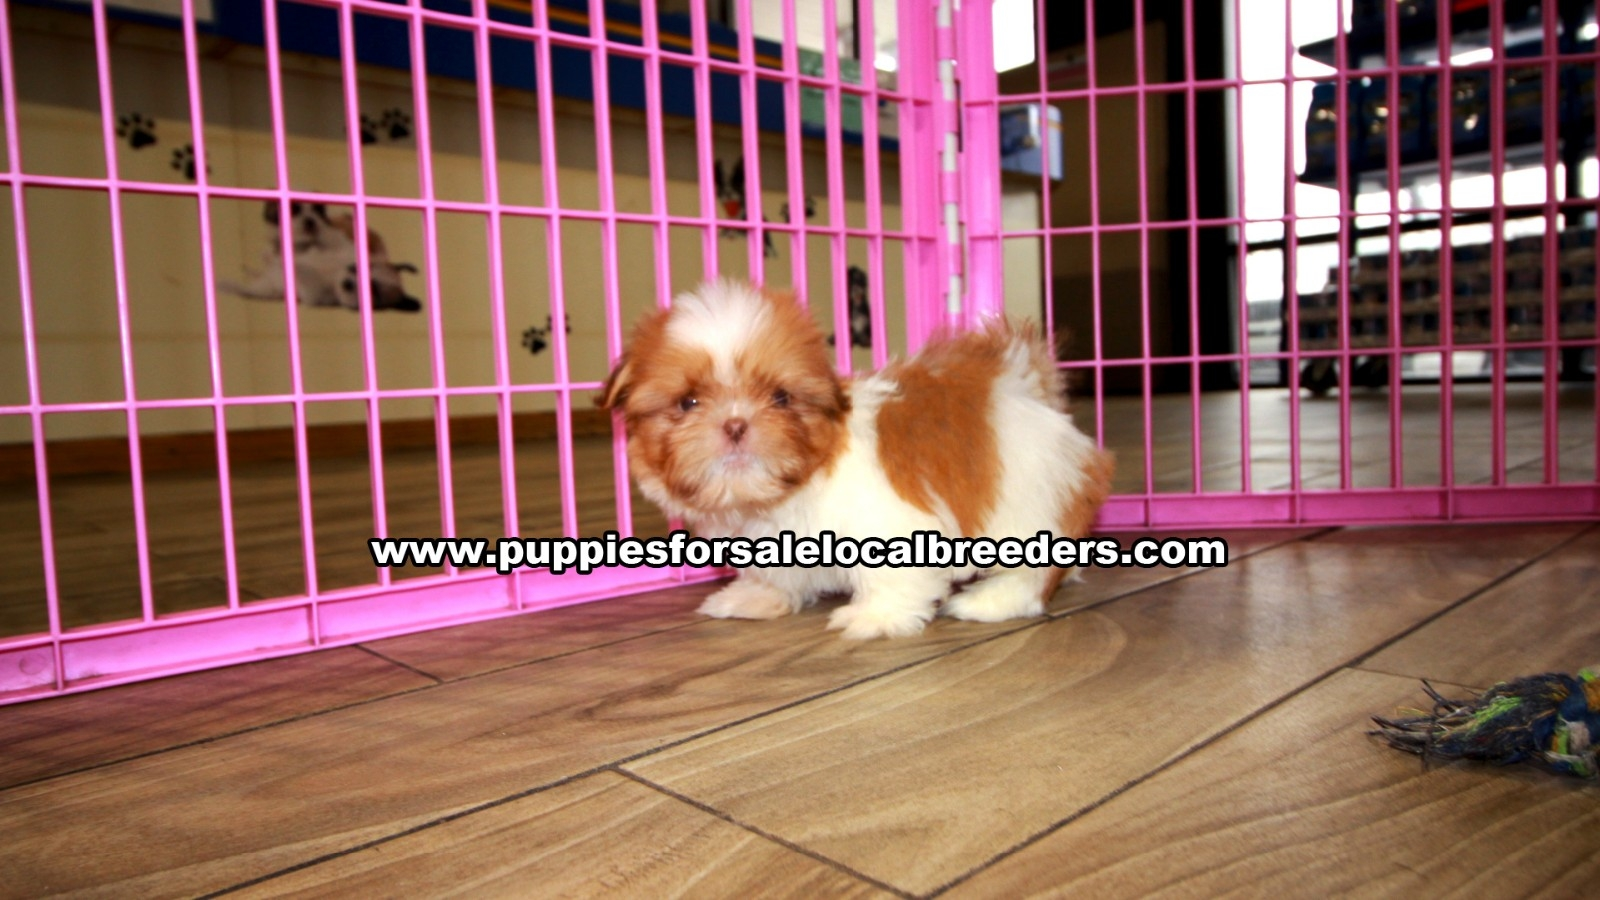 Small Shih Tzu, Puppies For Sale In Georgia, Local Breeders, Near Atlanta, Ga